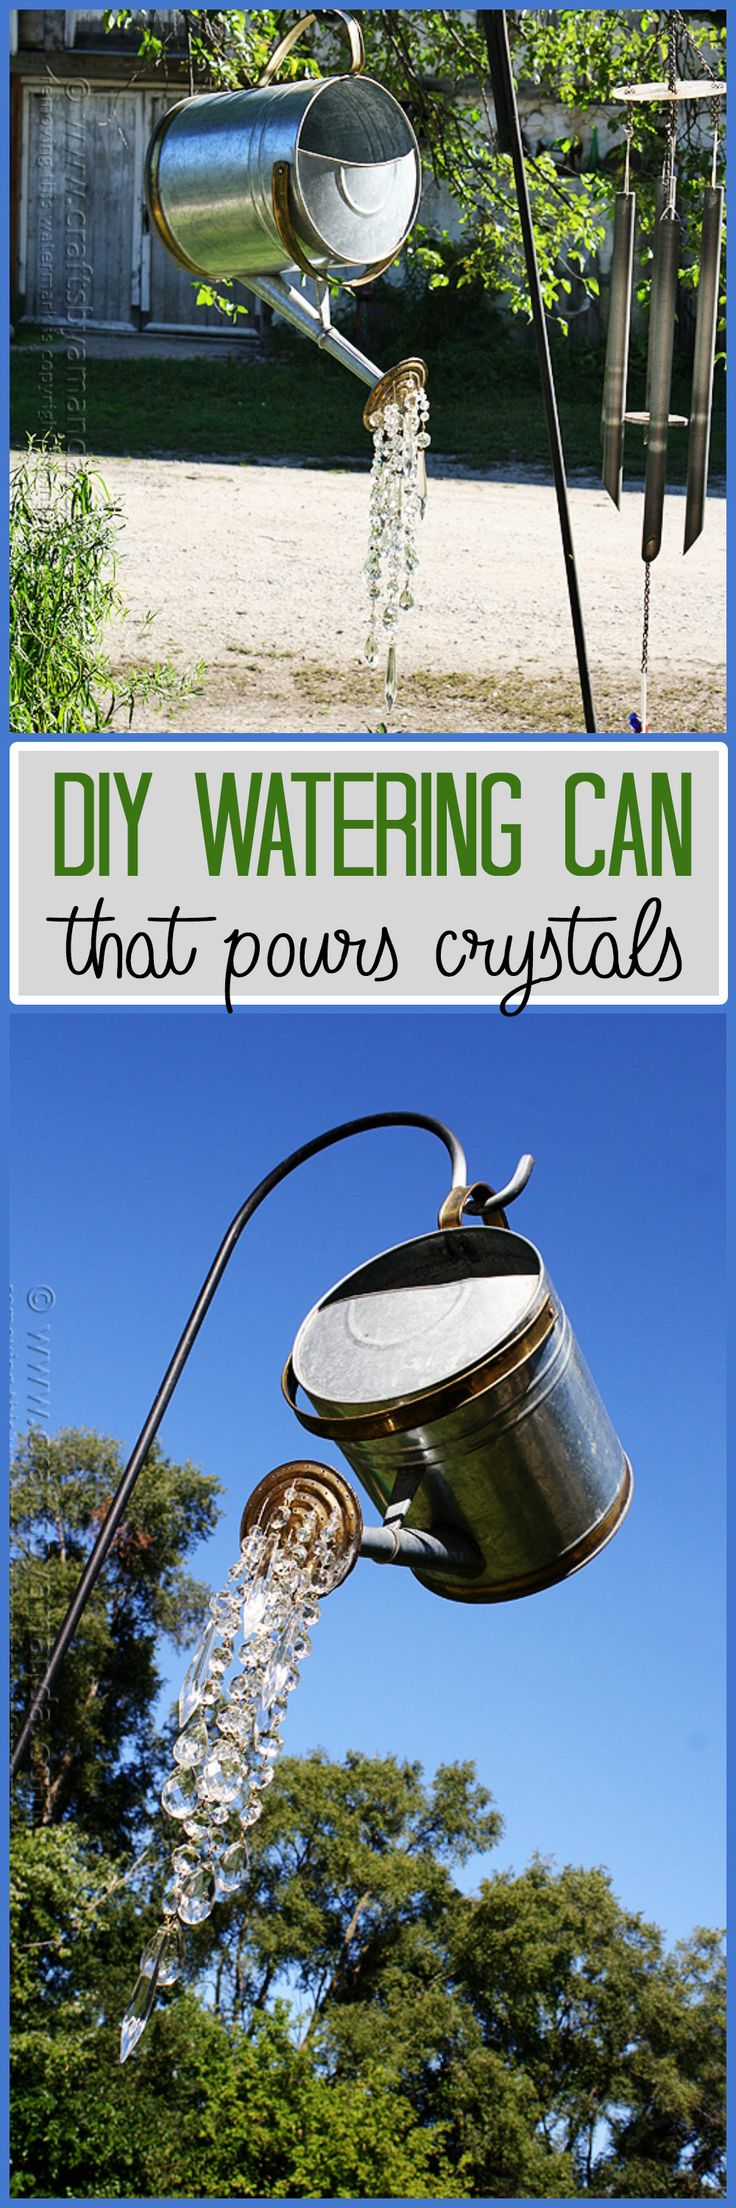 7 steps to a stylish outdoor party on a budget campsite washer